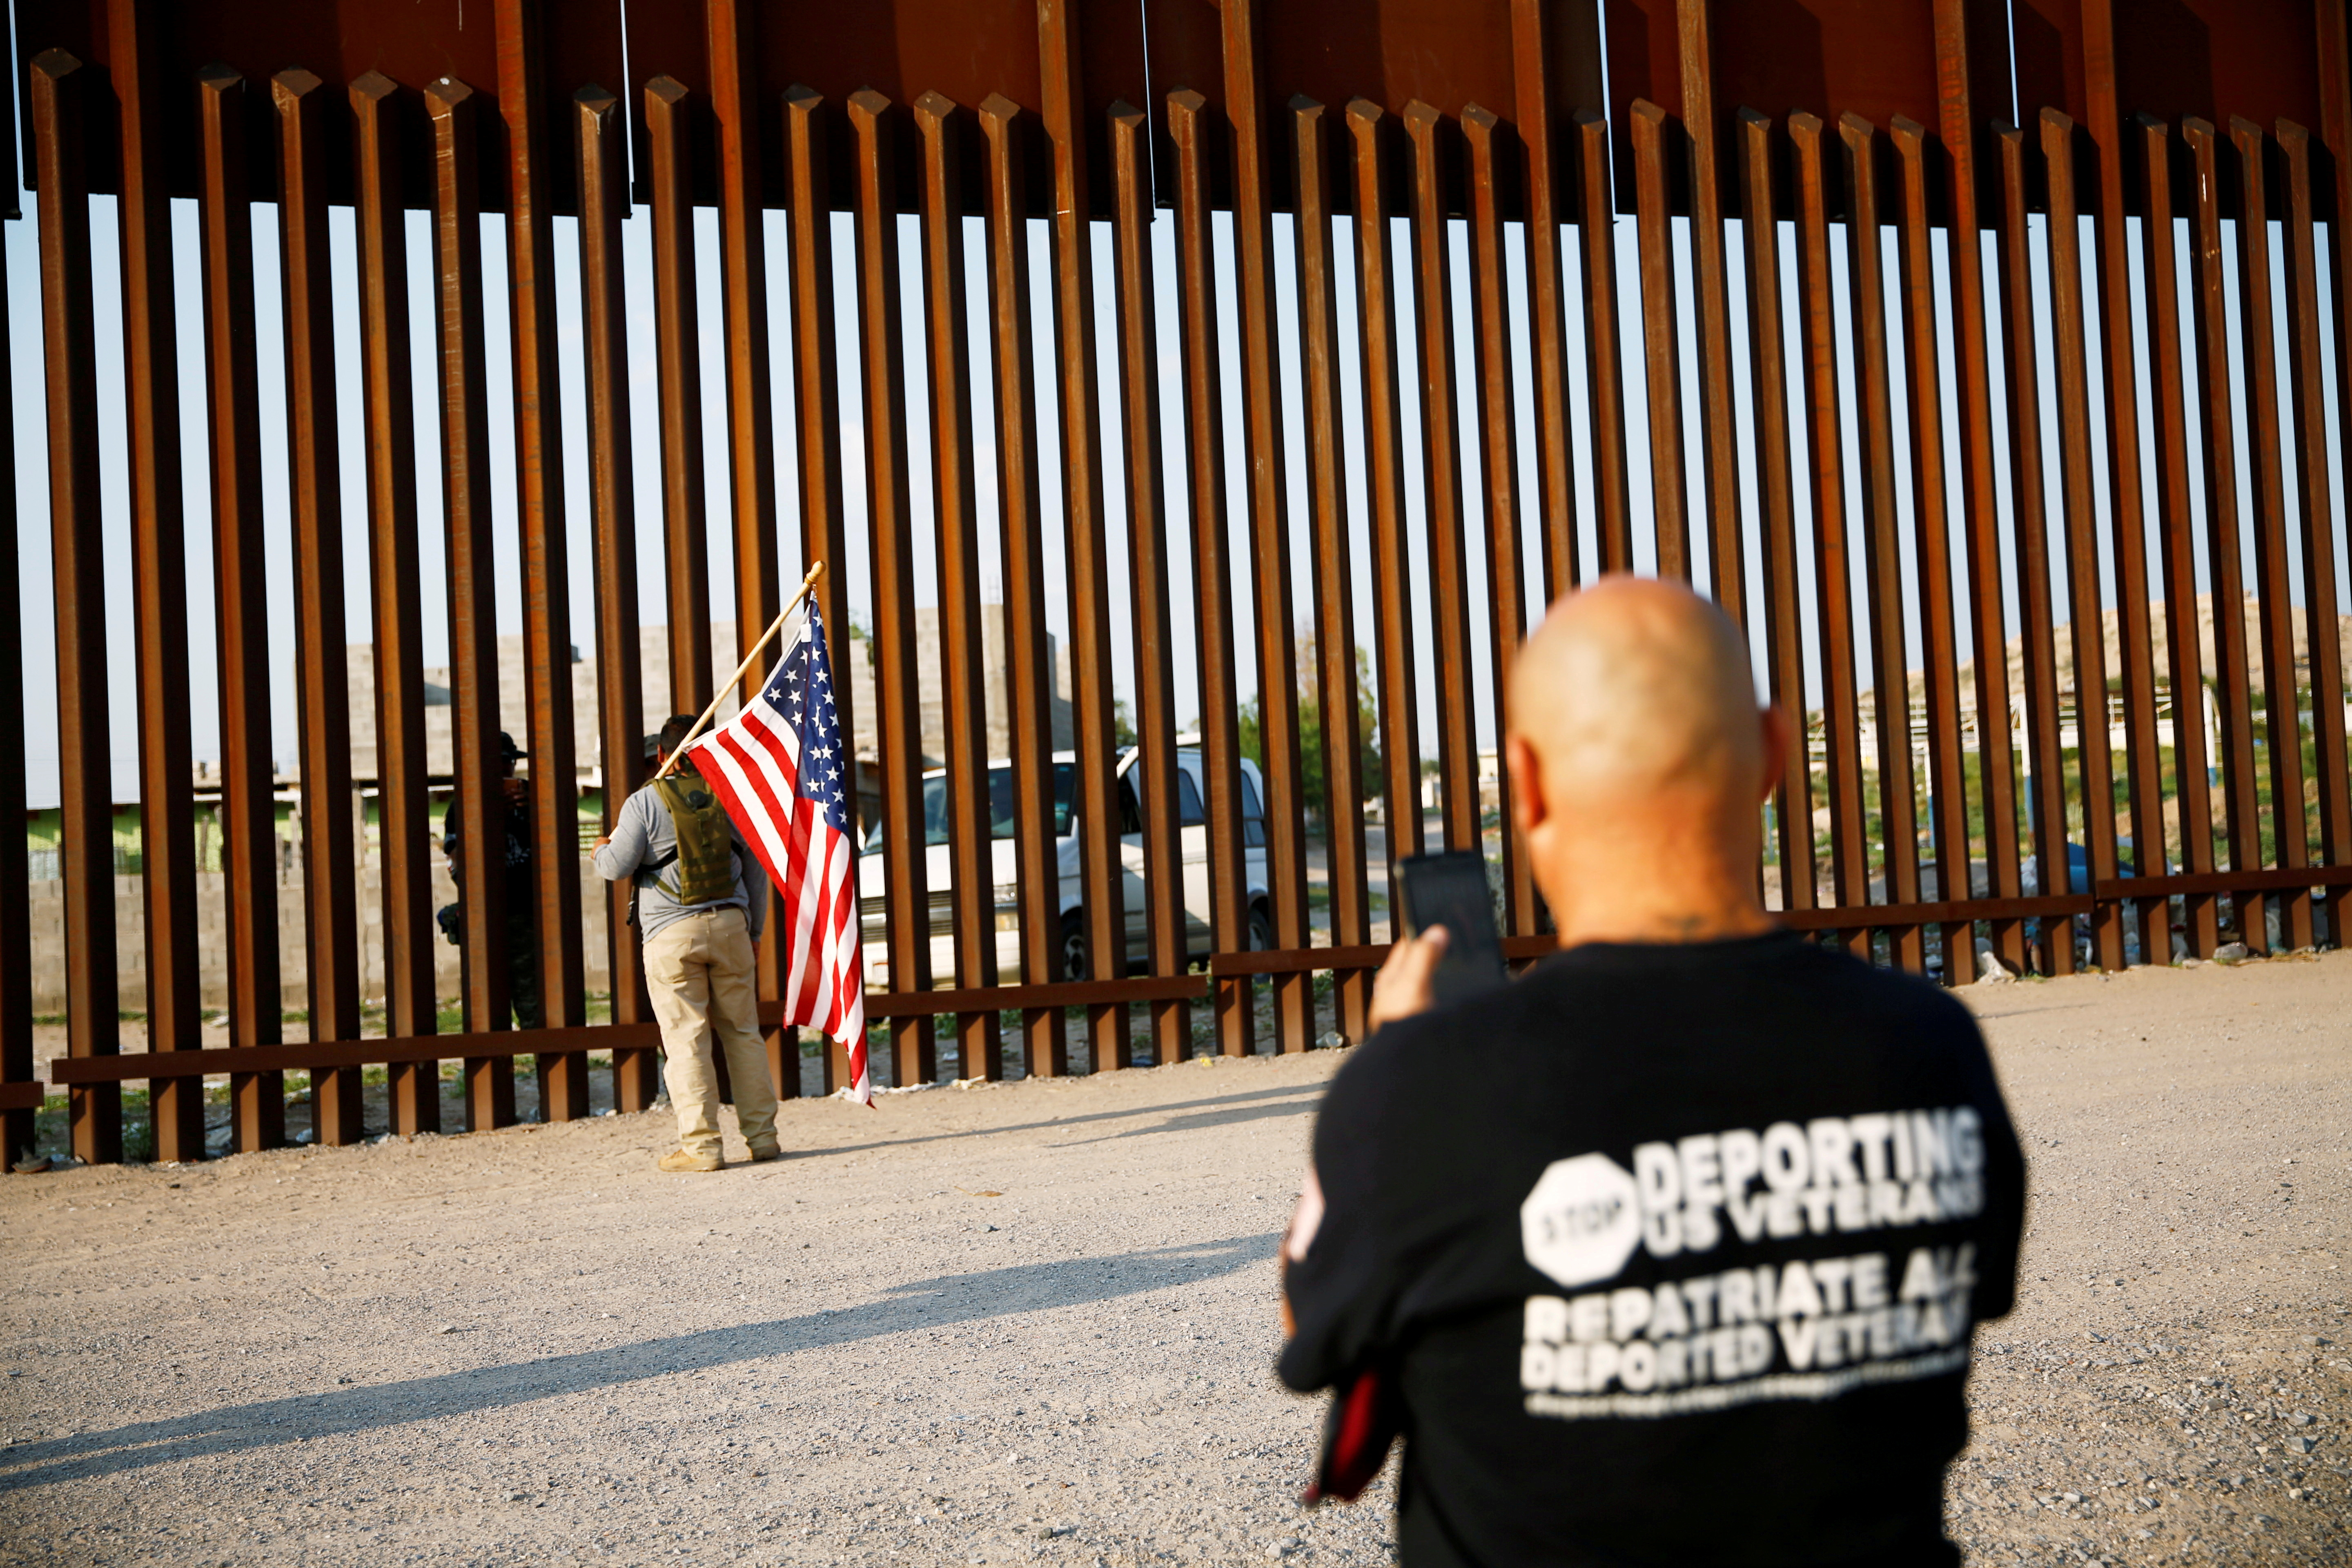 Ramon Castro, a U.S. Marine veteran, speaks through the border wall with military veterans as he takes part in the